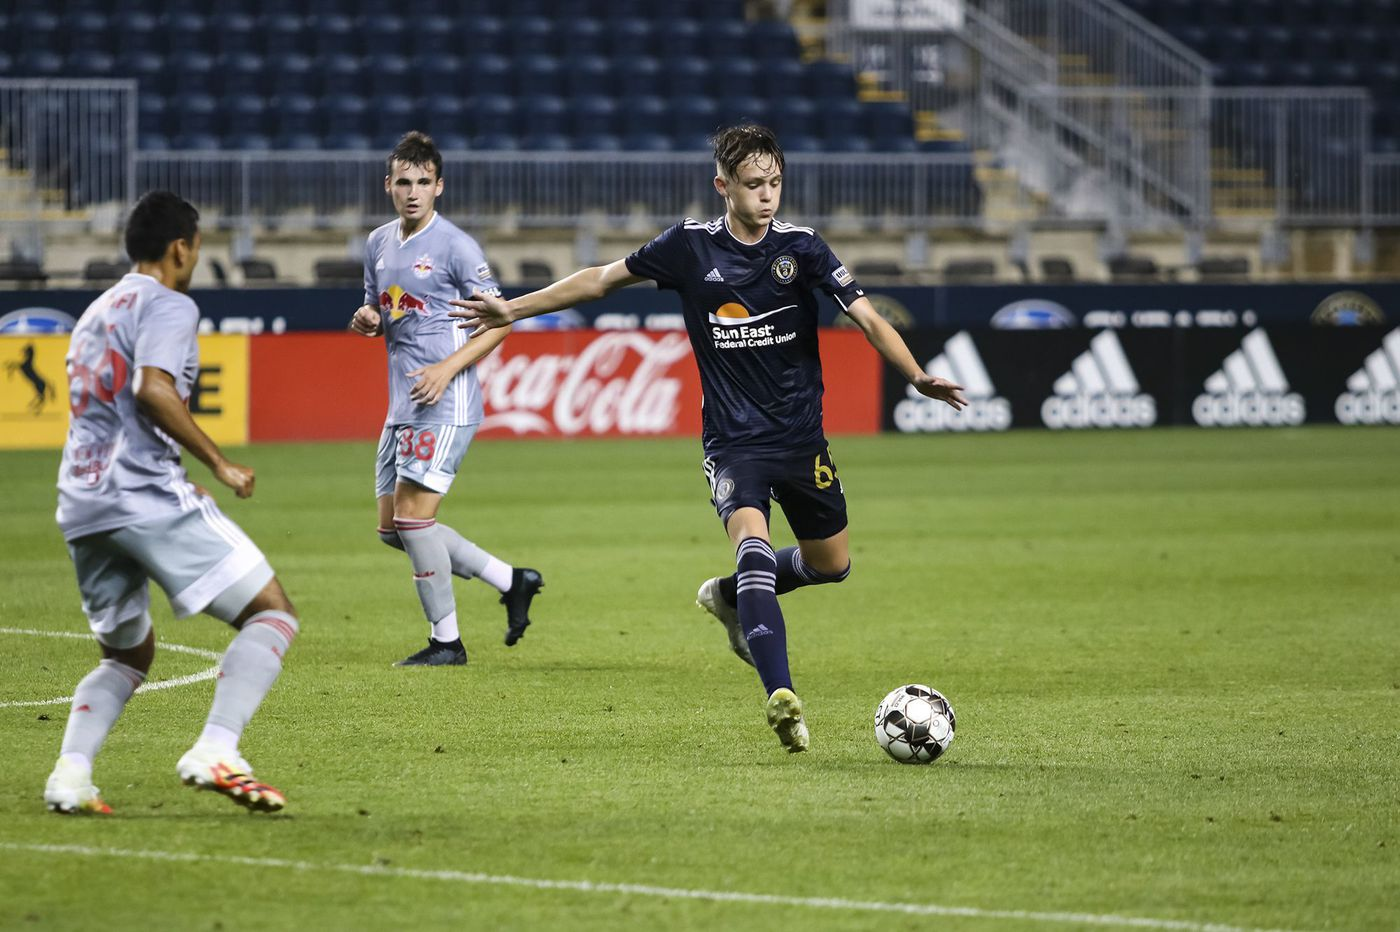 Union sign academy midfielder Jack McGlynn to MLS deal that will start in 2021